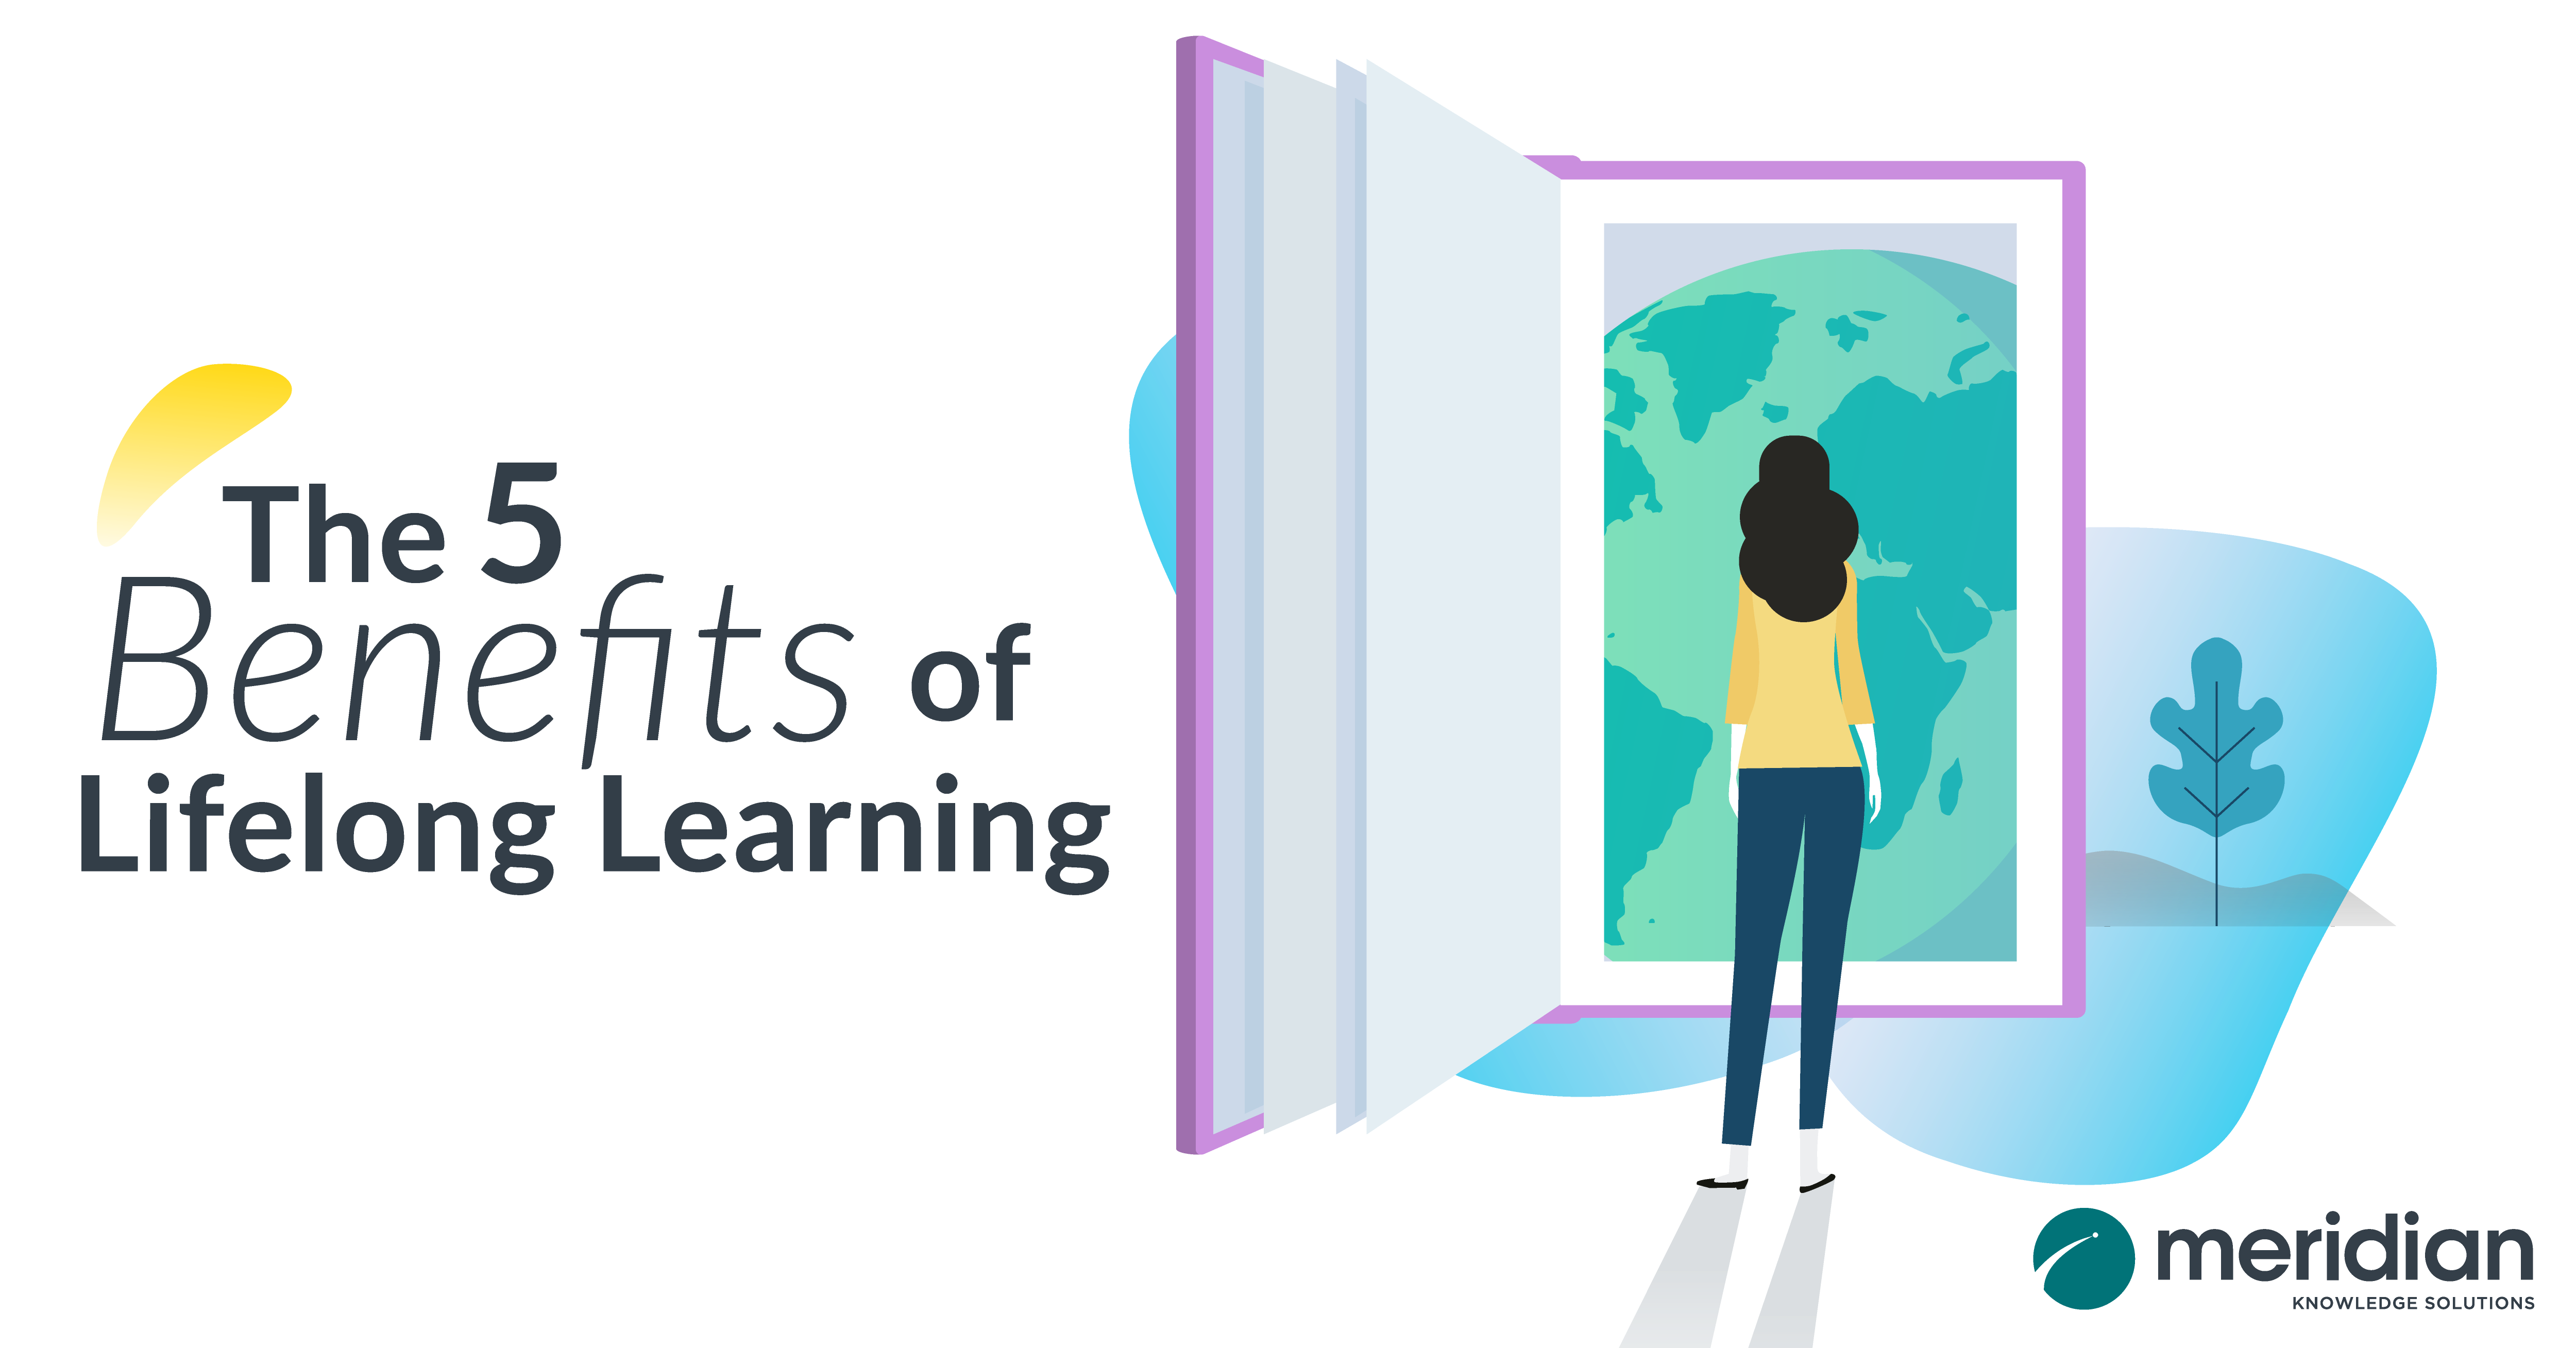 The 5 Benefits of Lifelong Learning